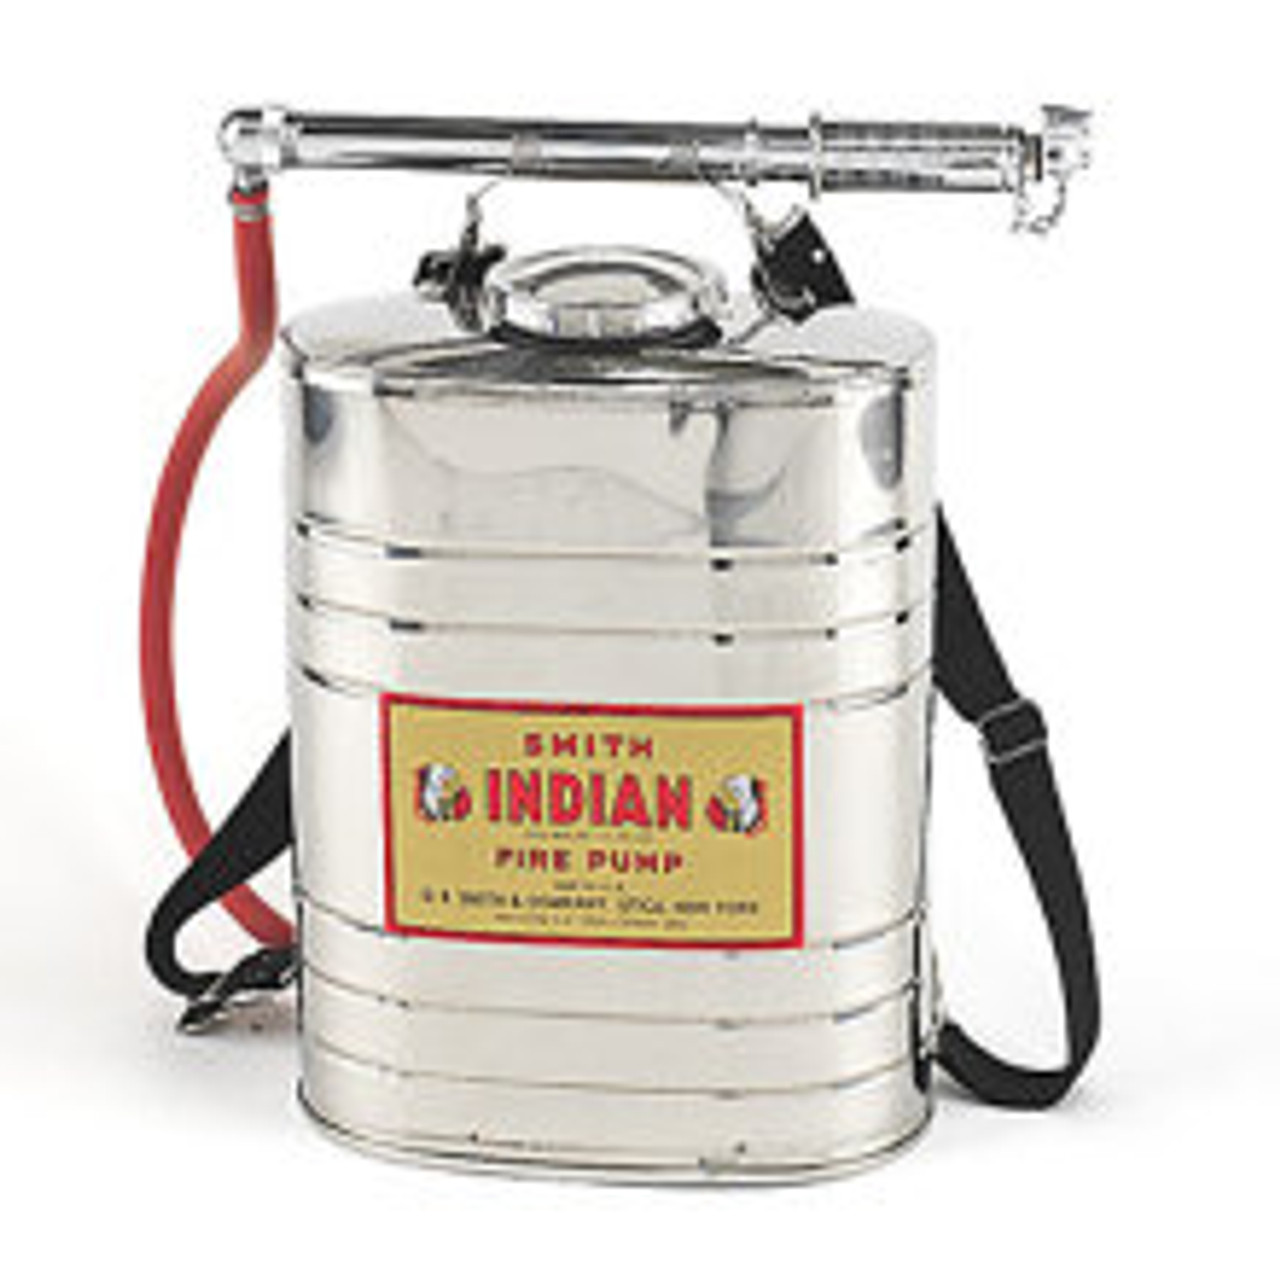 Indian Fire Pump 90S Stainless Steel, 5 Gallon Tank